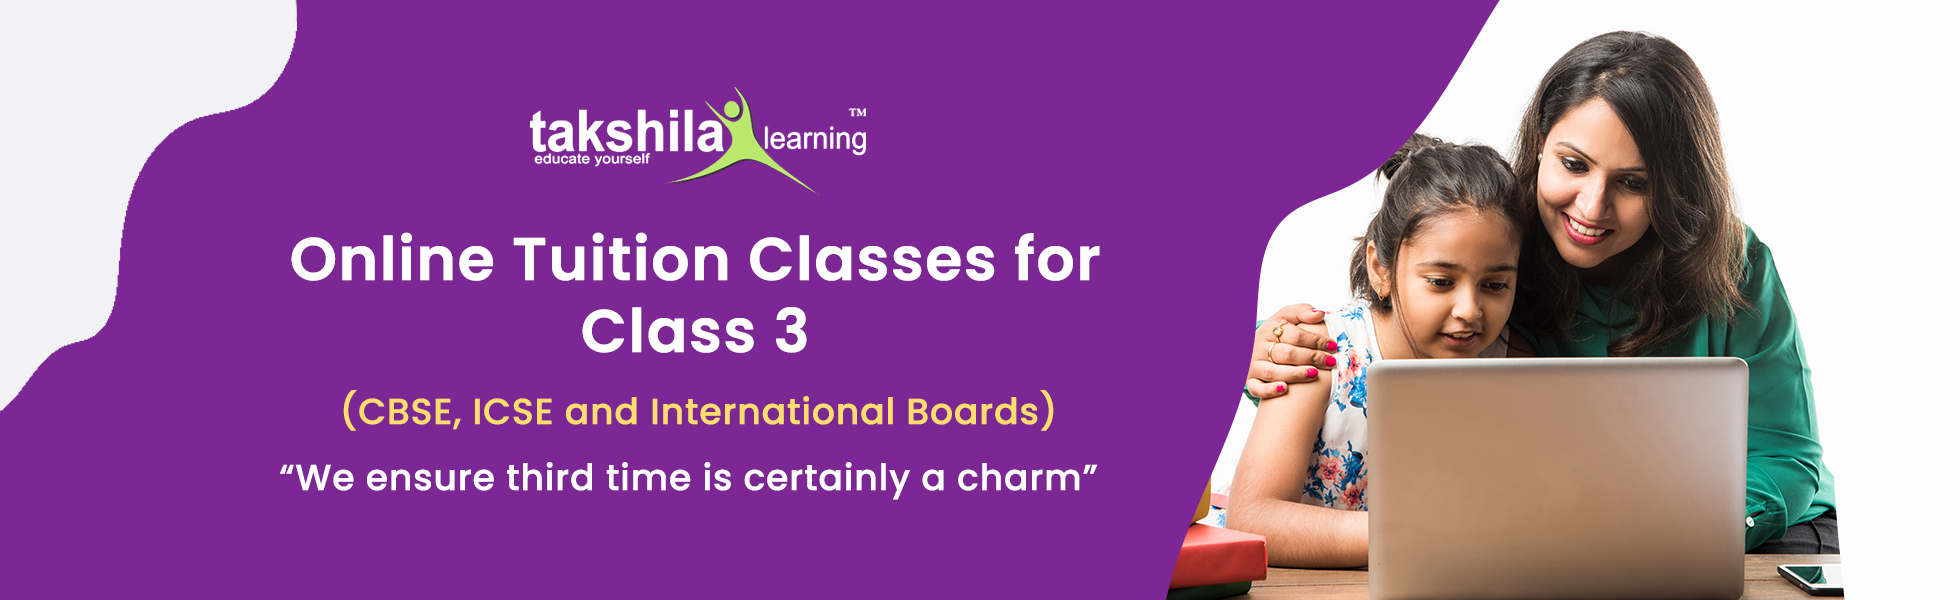 Online Tuition Classes for Class 3